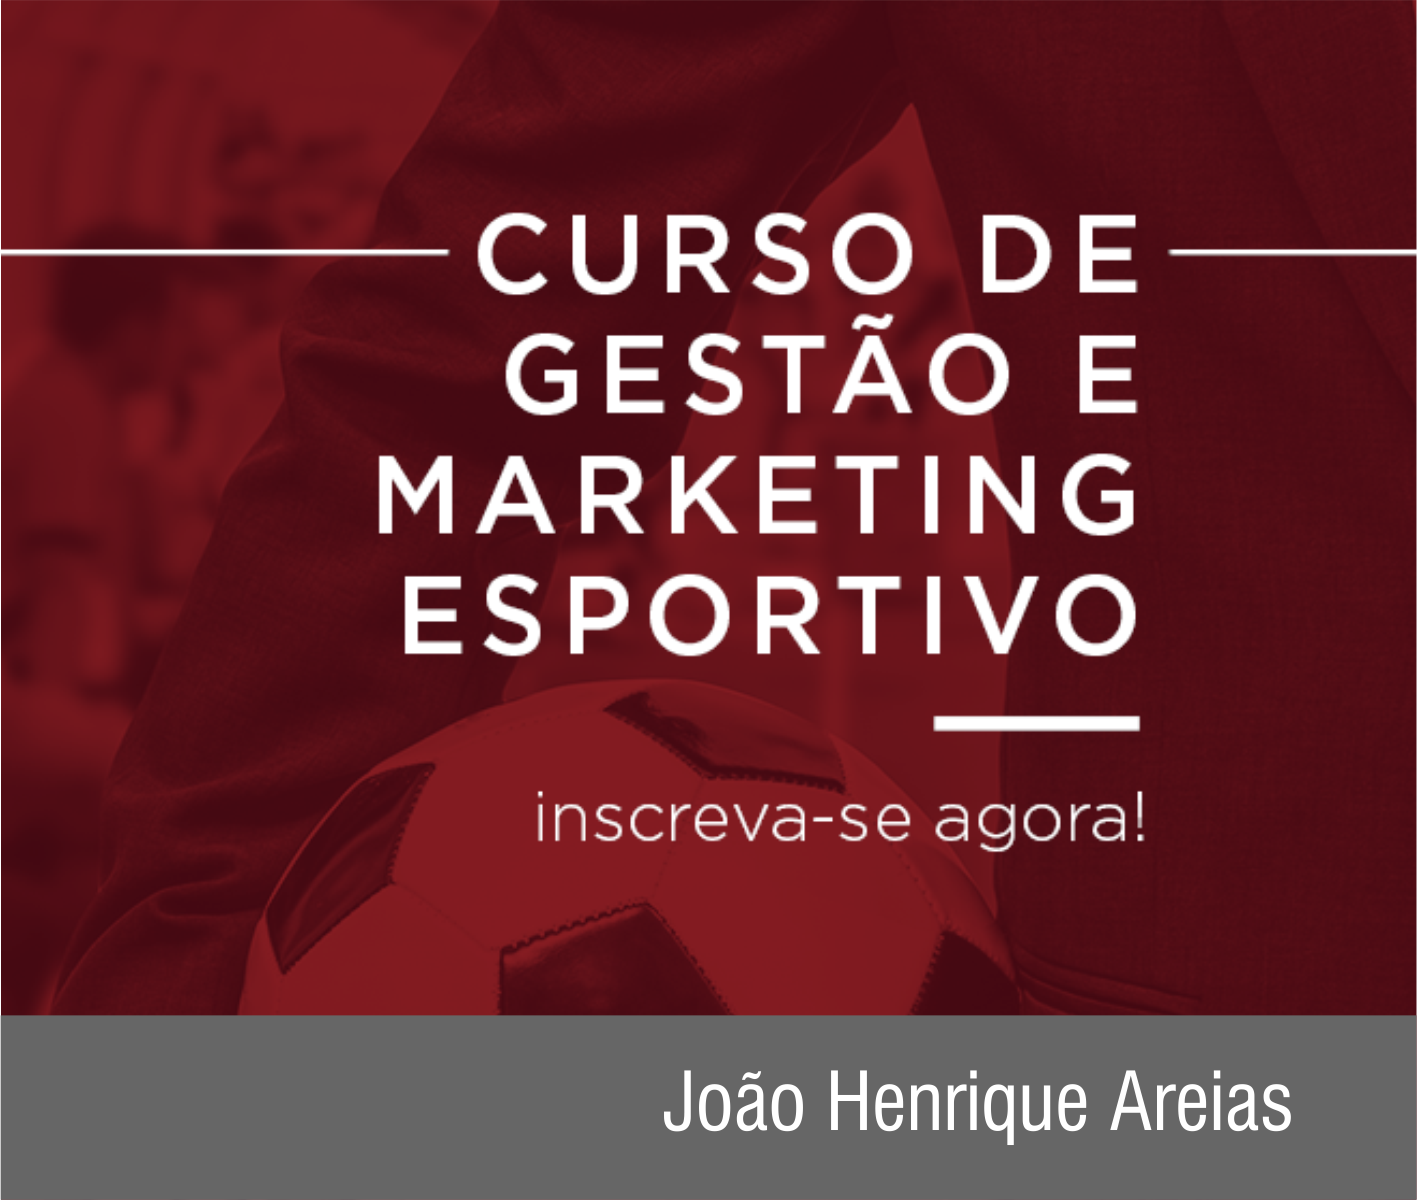 65e7c48e14 GESTÃO E MARKETING ESPORTIVO - Evolution Marketing